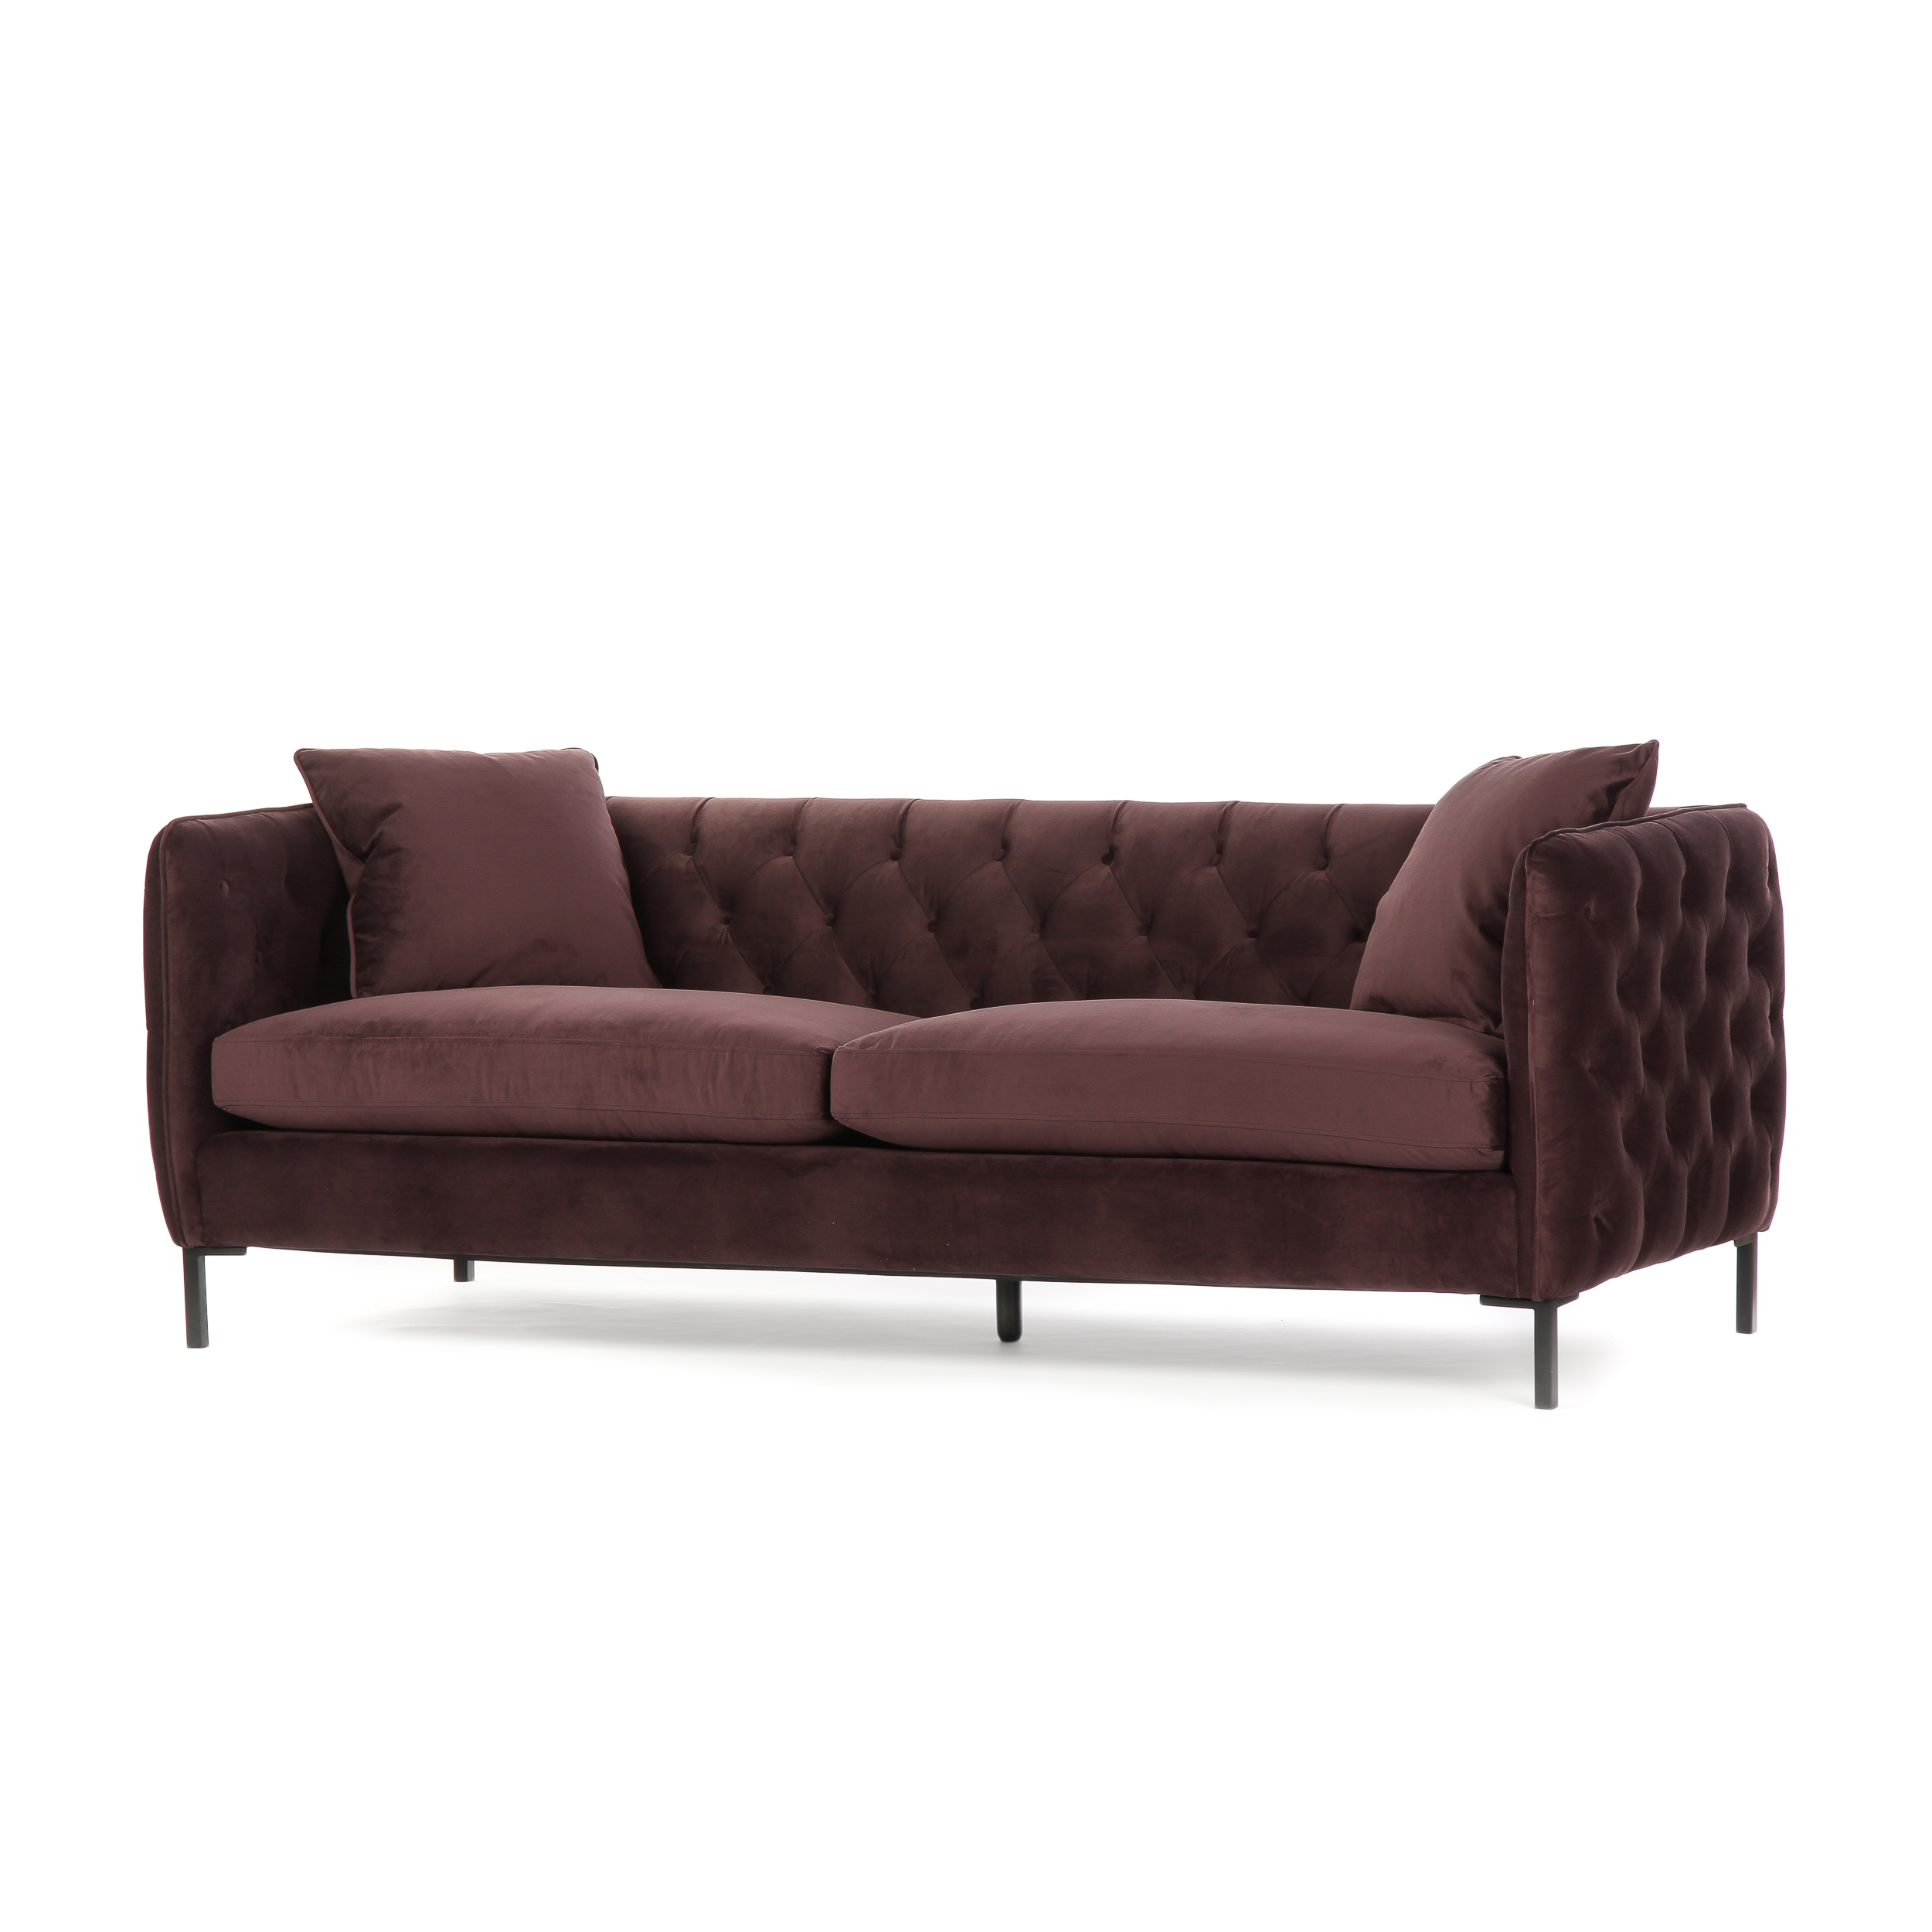 Диван FS060-30 Rev#1 Masen Sofa the cosmo cosmo 30